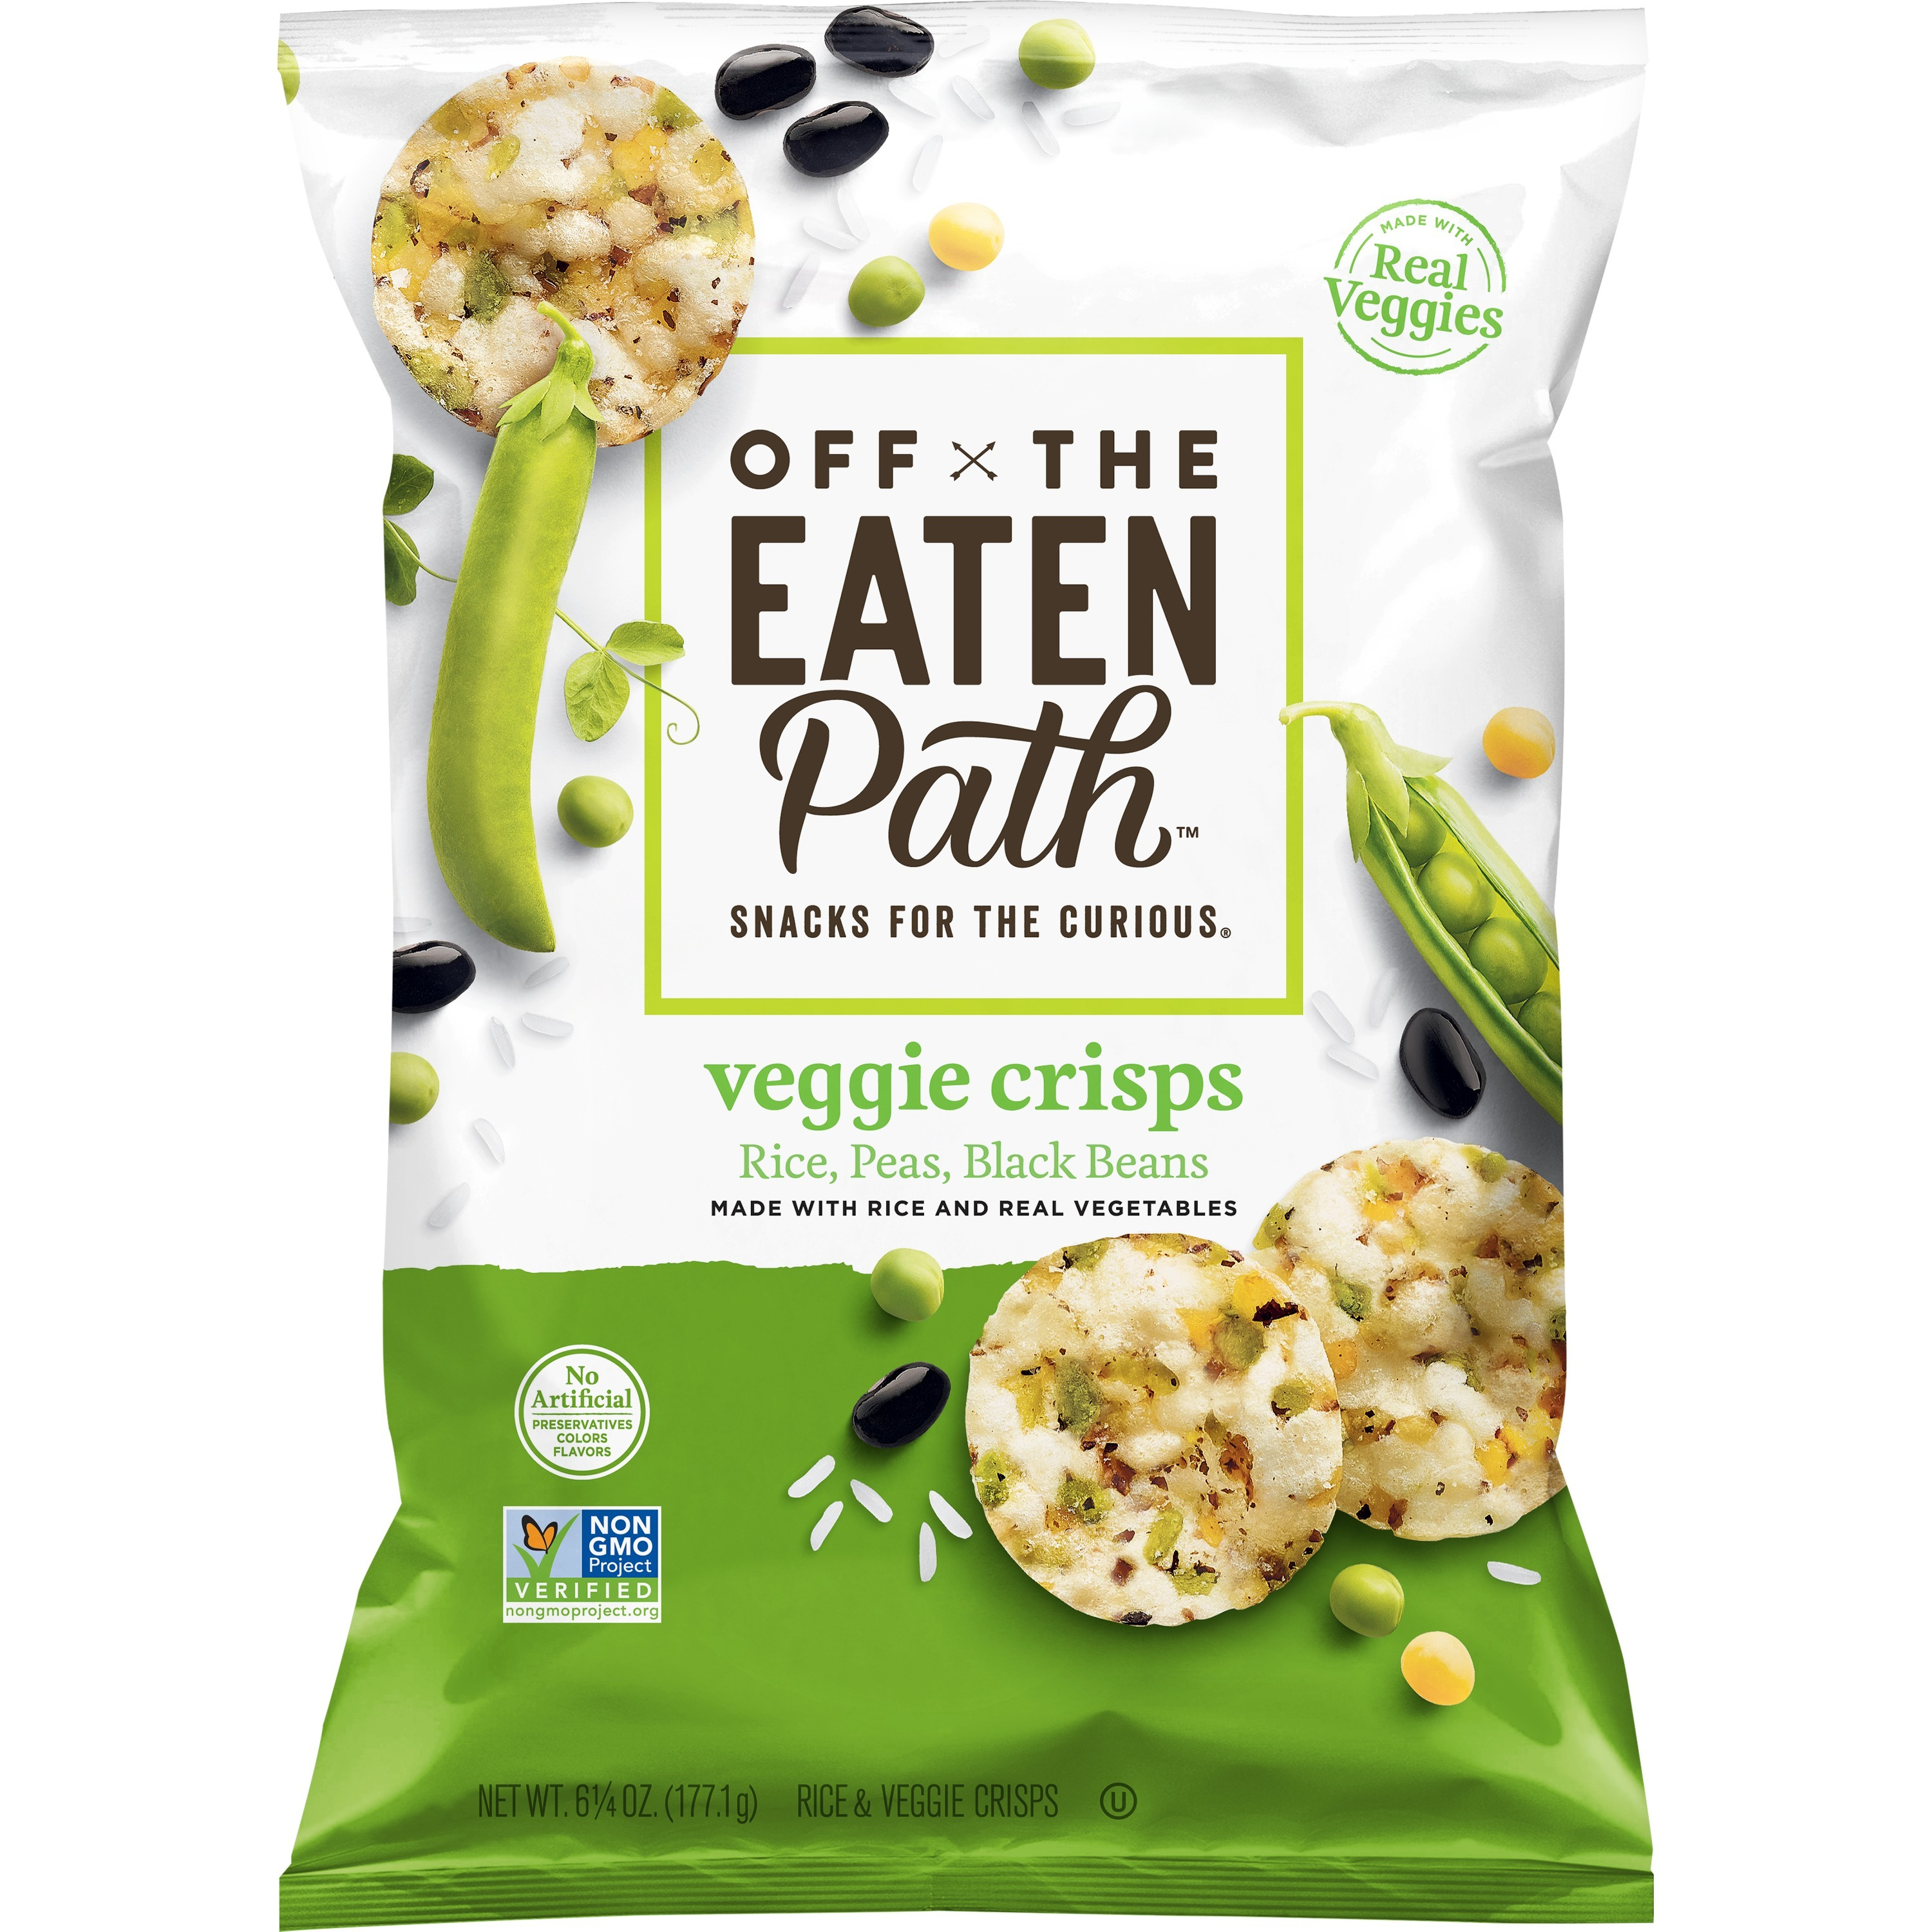 Off the Eaten Path Veggie Crisps, 6 25 oz Bag - Walmart com